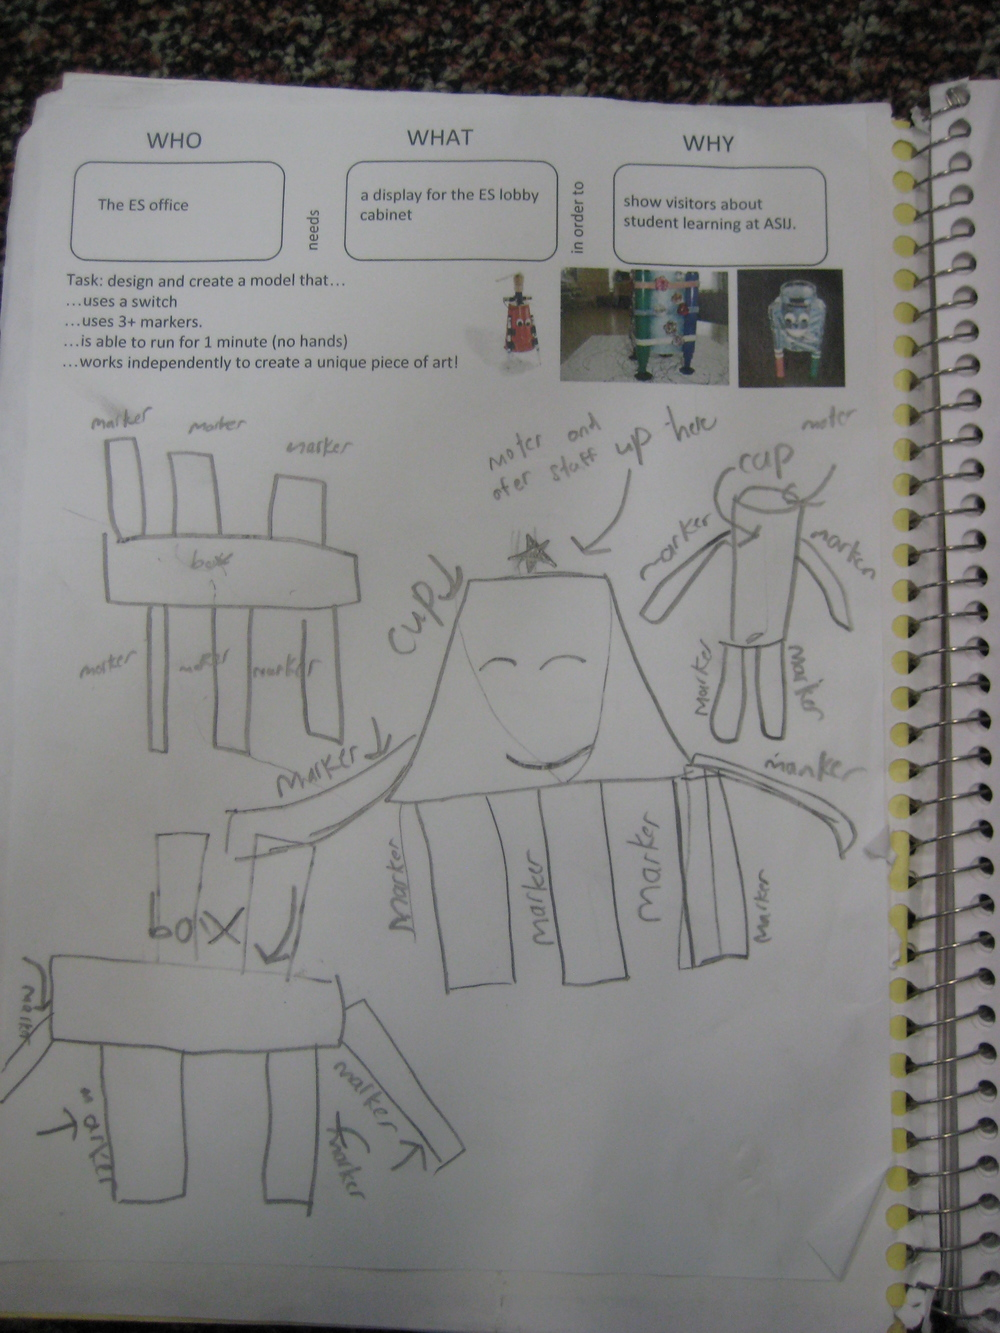 Initial planning and designs captured in Science Notebooks